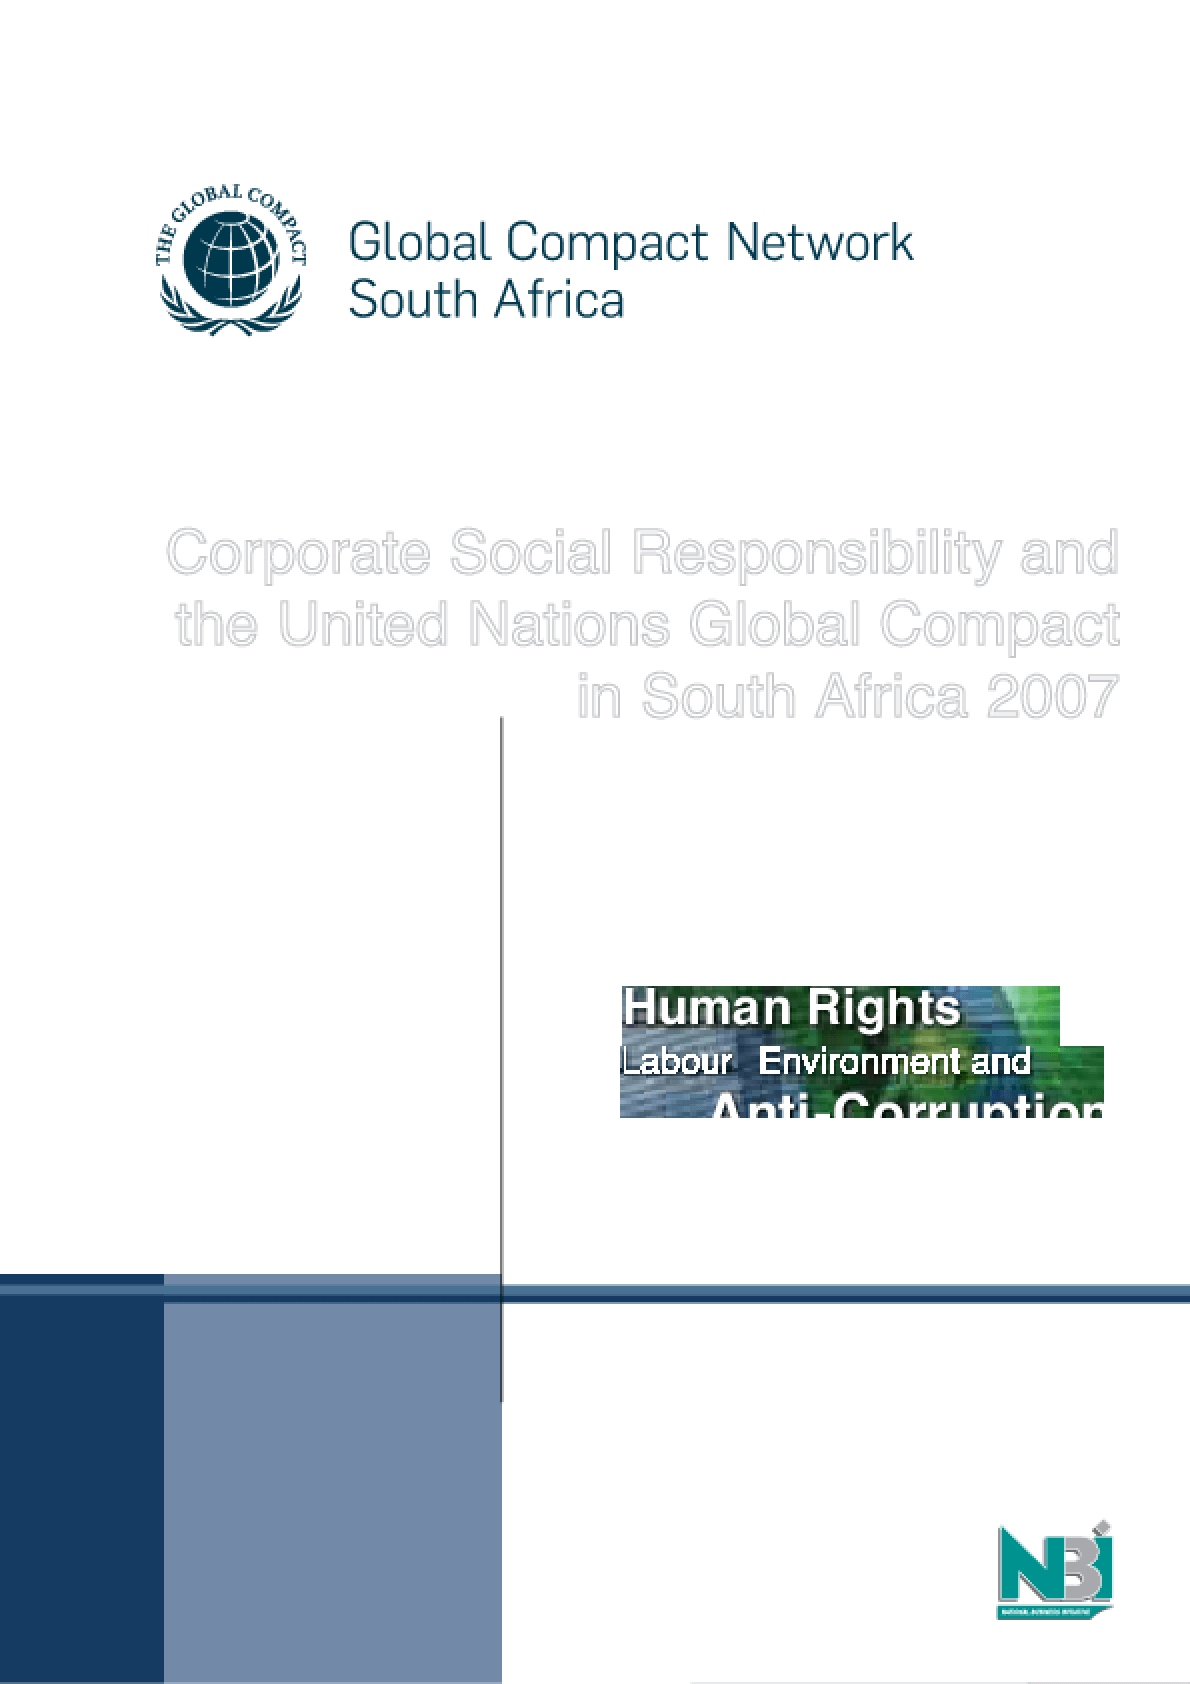 Corporate Social Responsibility and the United Nations Global Compact in South Africa